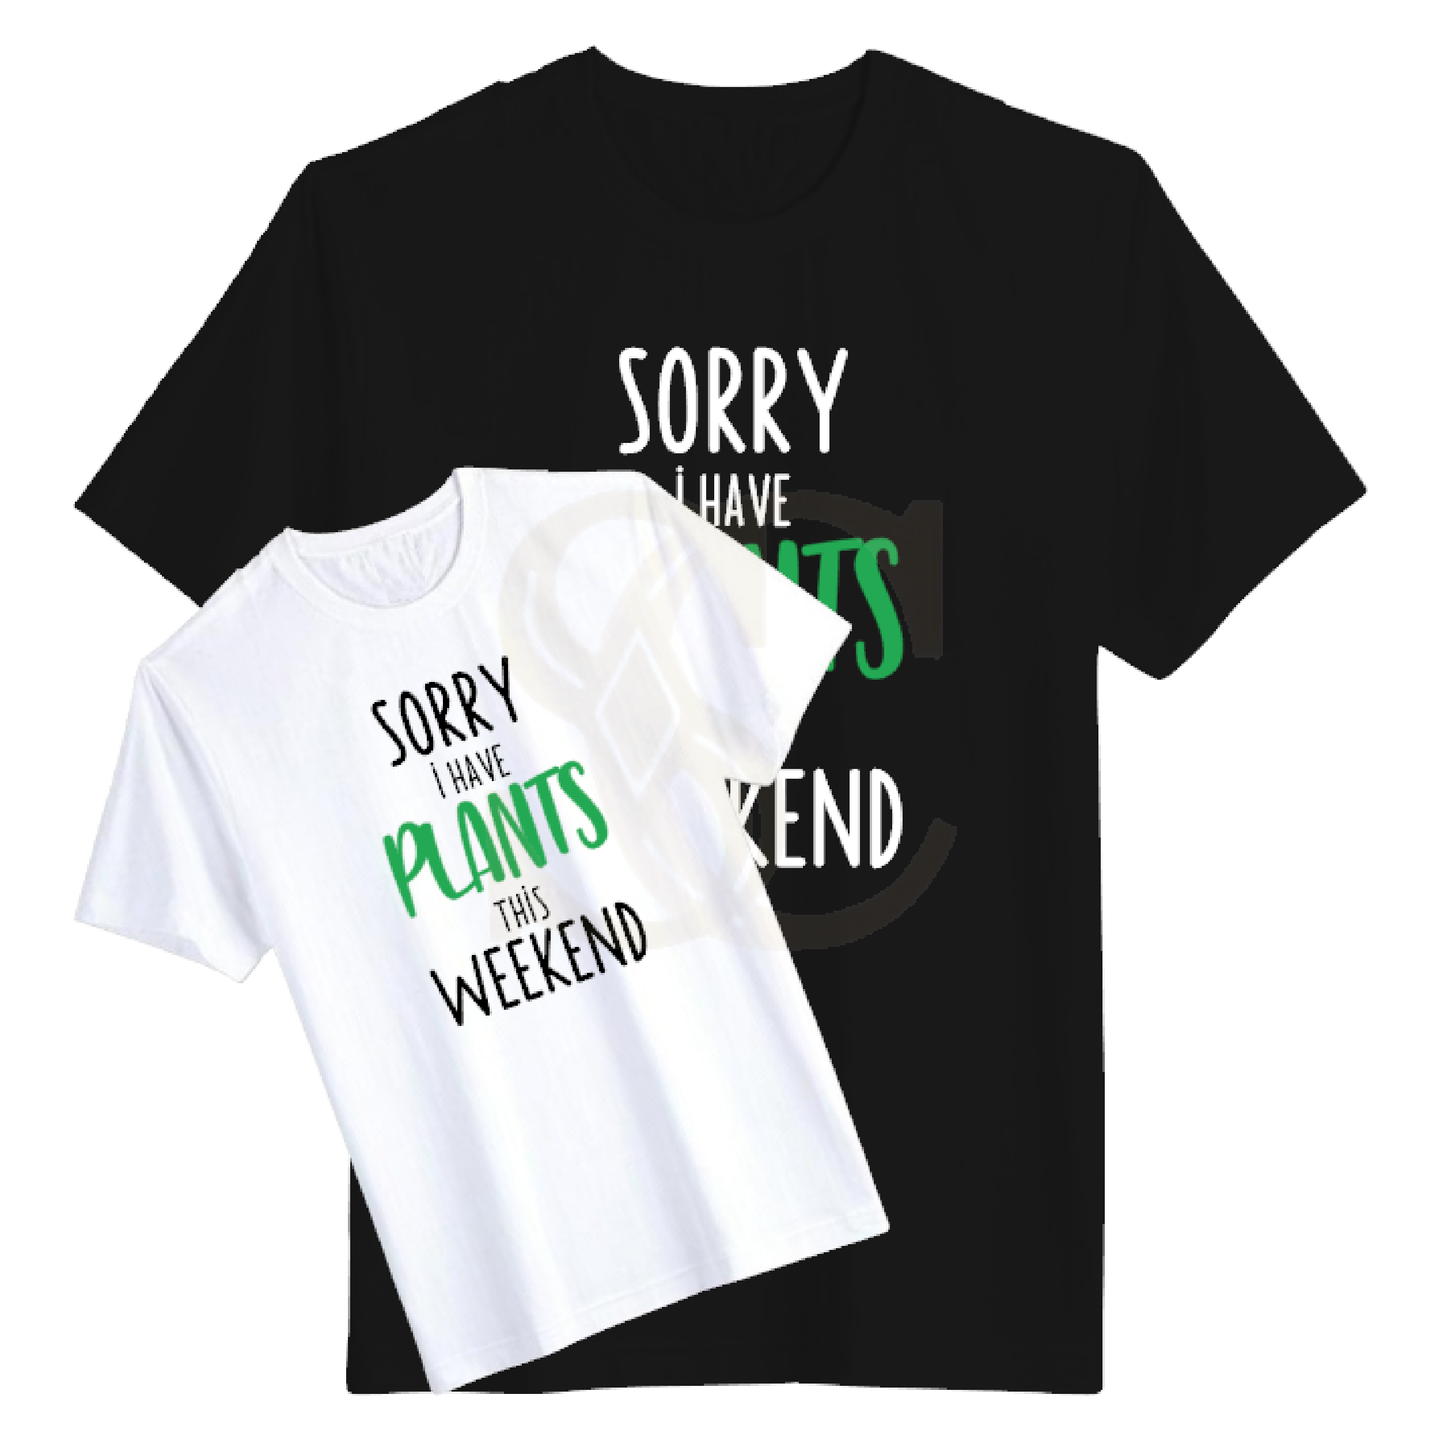 Sorry I have Plants this Weekend T-Shirt